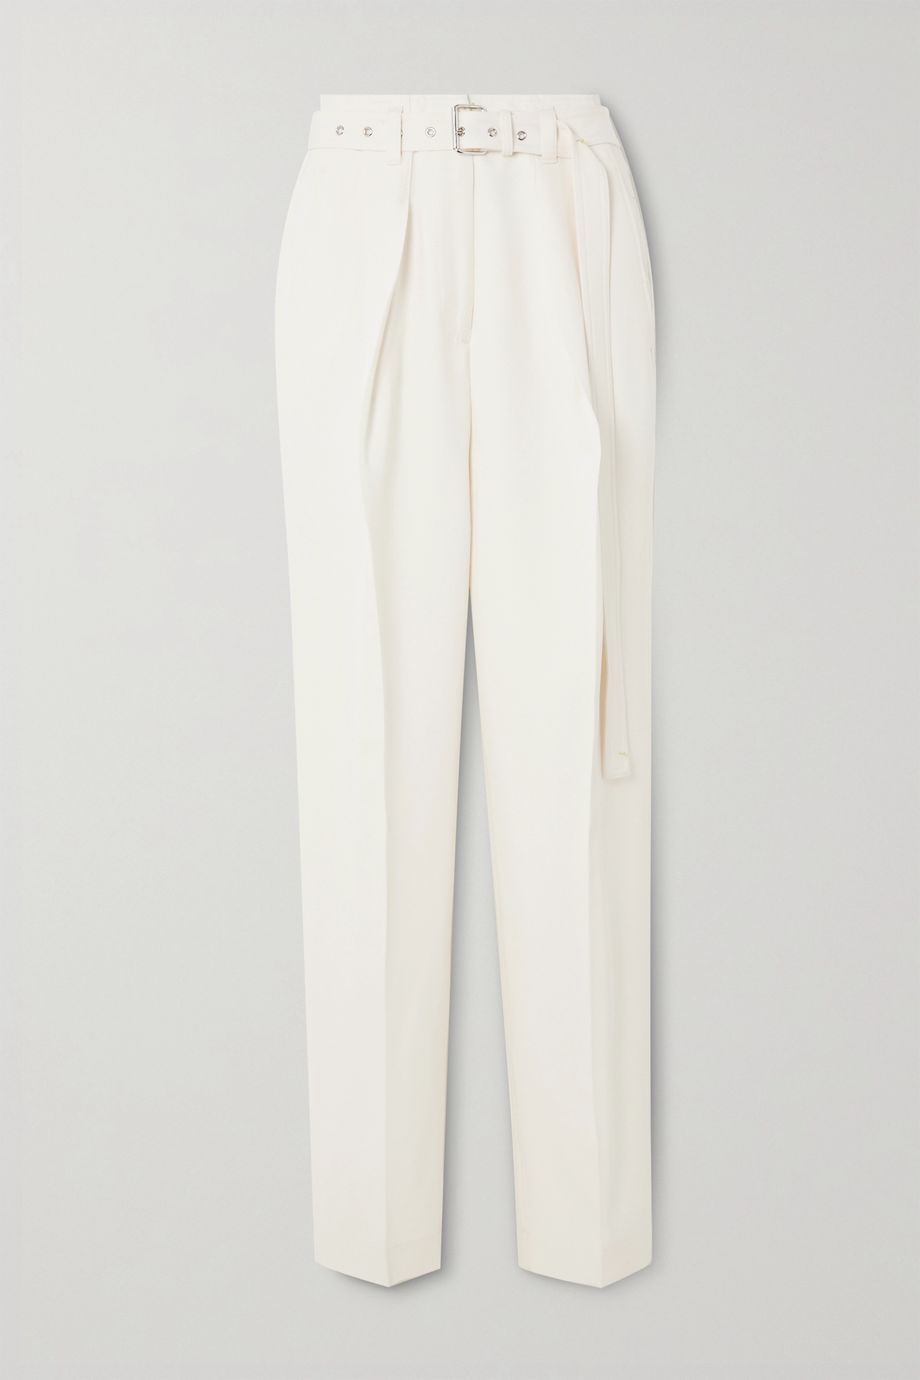 JW Anderson Belted wool tapered pants